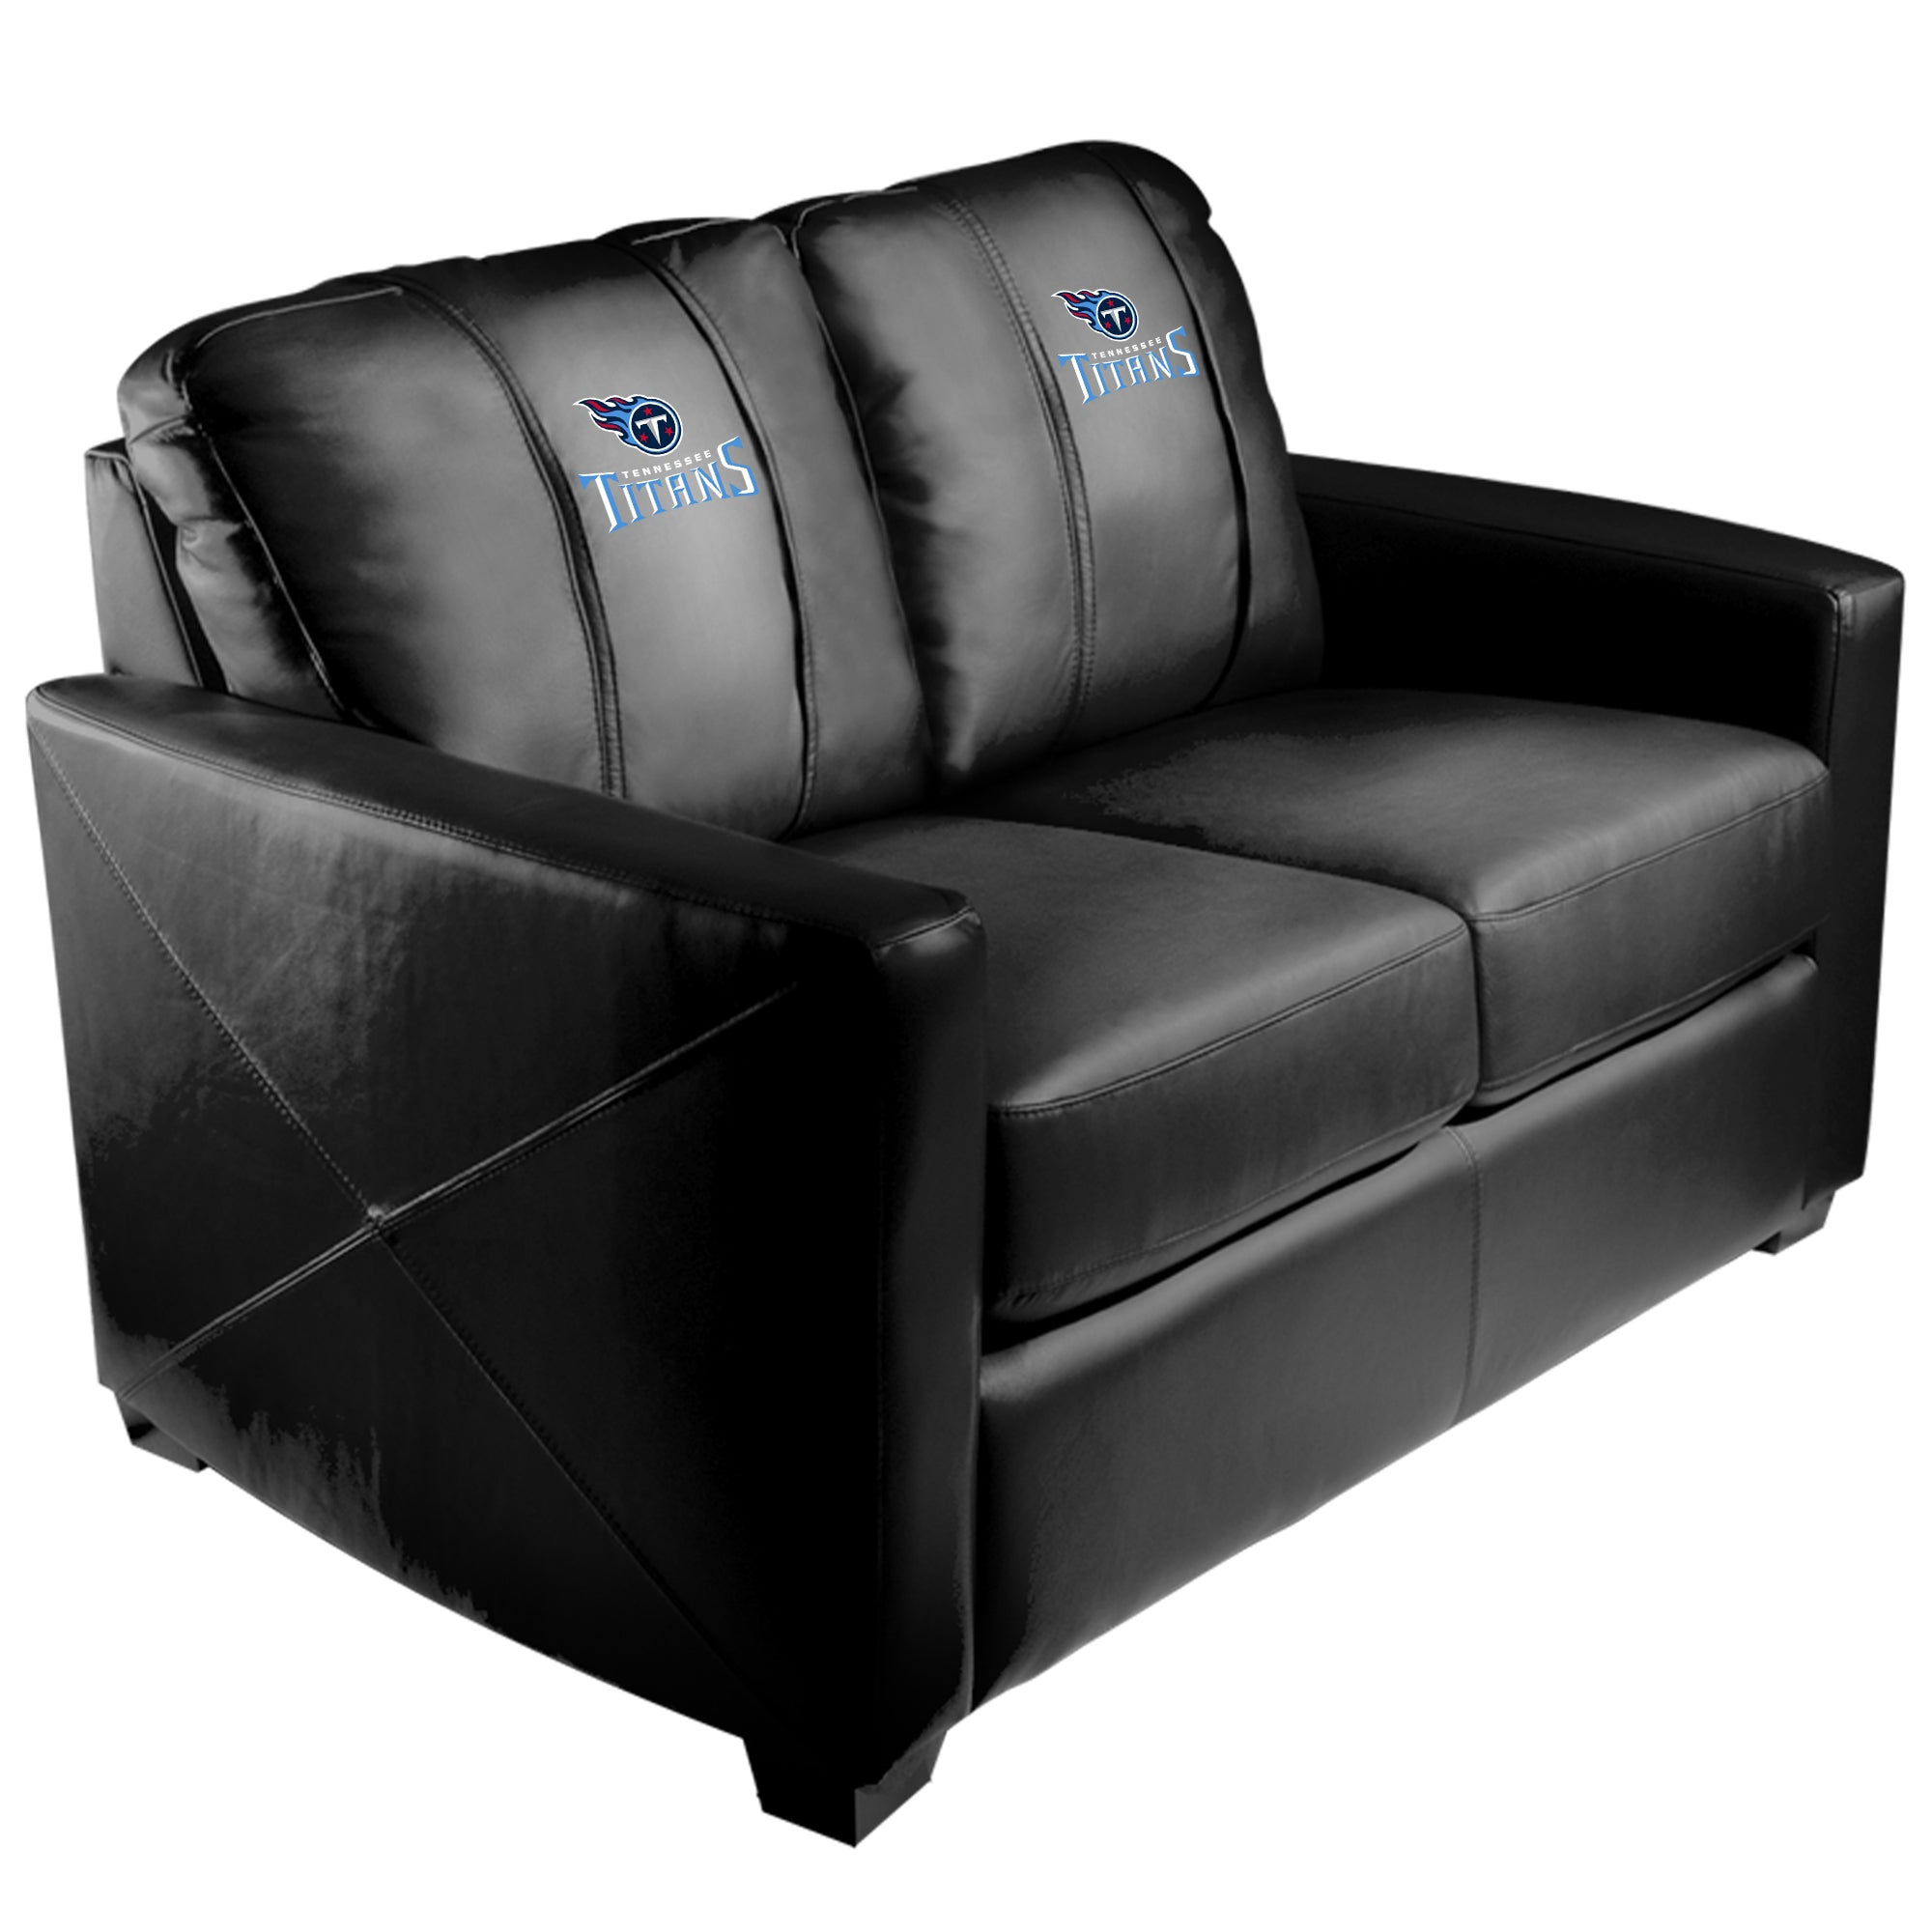 Silver Loveseat with  Tennessee Titans Secondary Logo